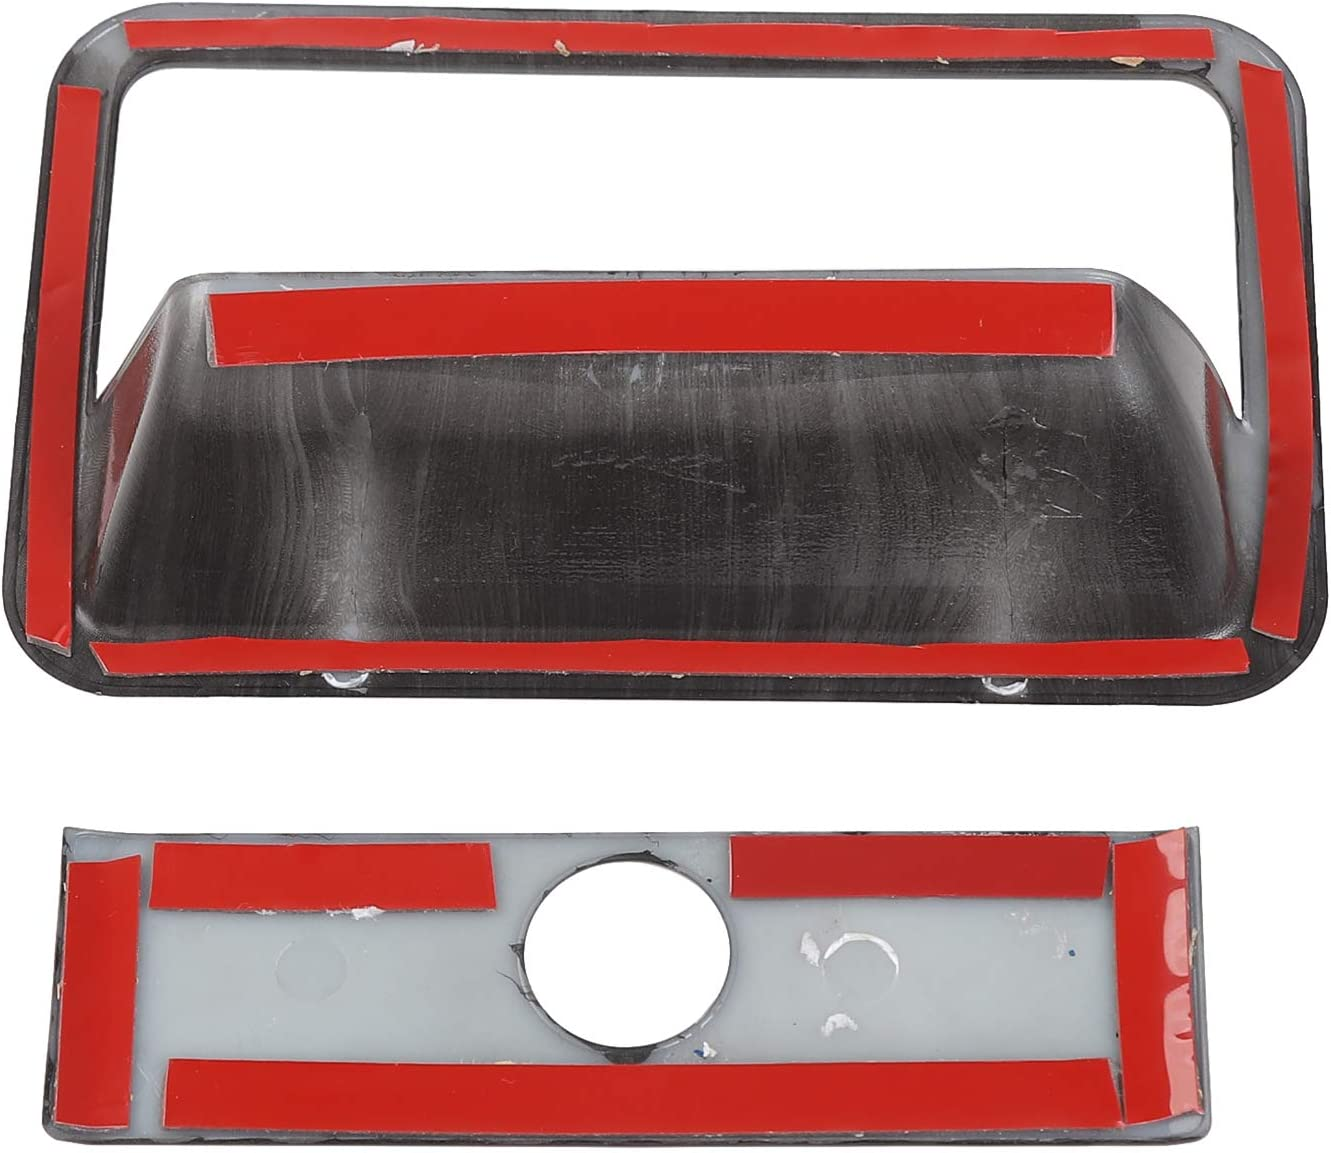 Red Co-pilot Storage Box Handle Cover Trim For Ford F150 F-150 2015 2016-2018